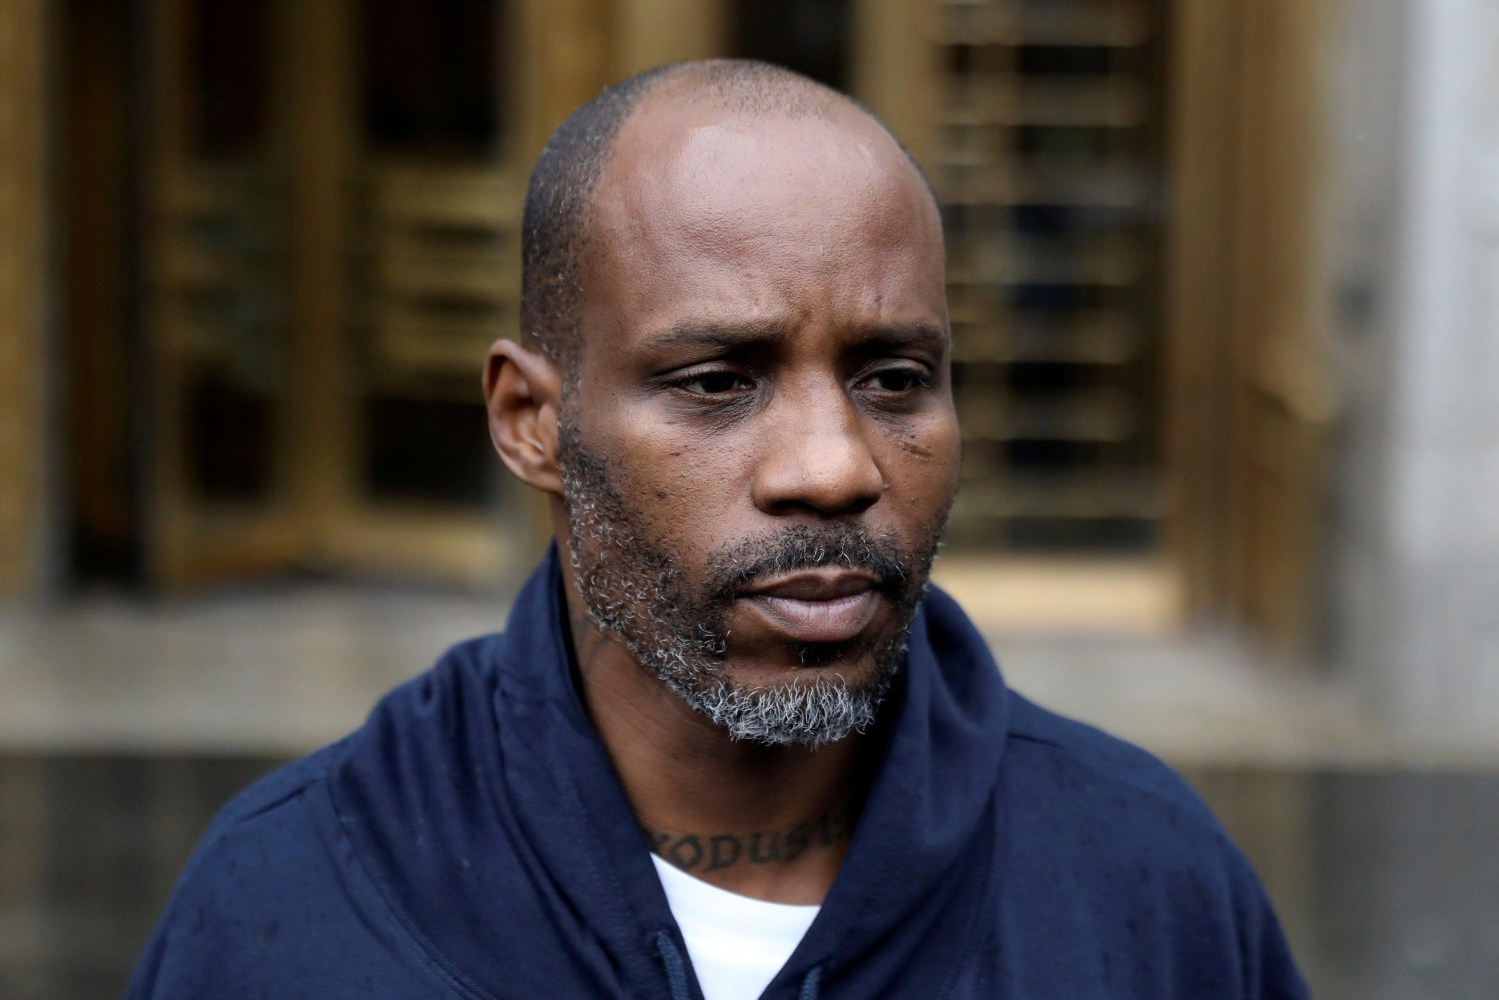 DMX pleads guilty to fraud, dodging $1.7 million in taxes - NBC News